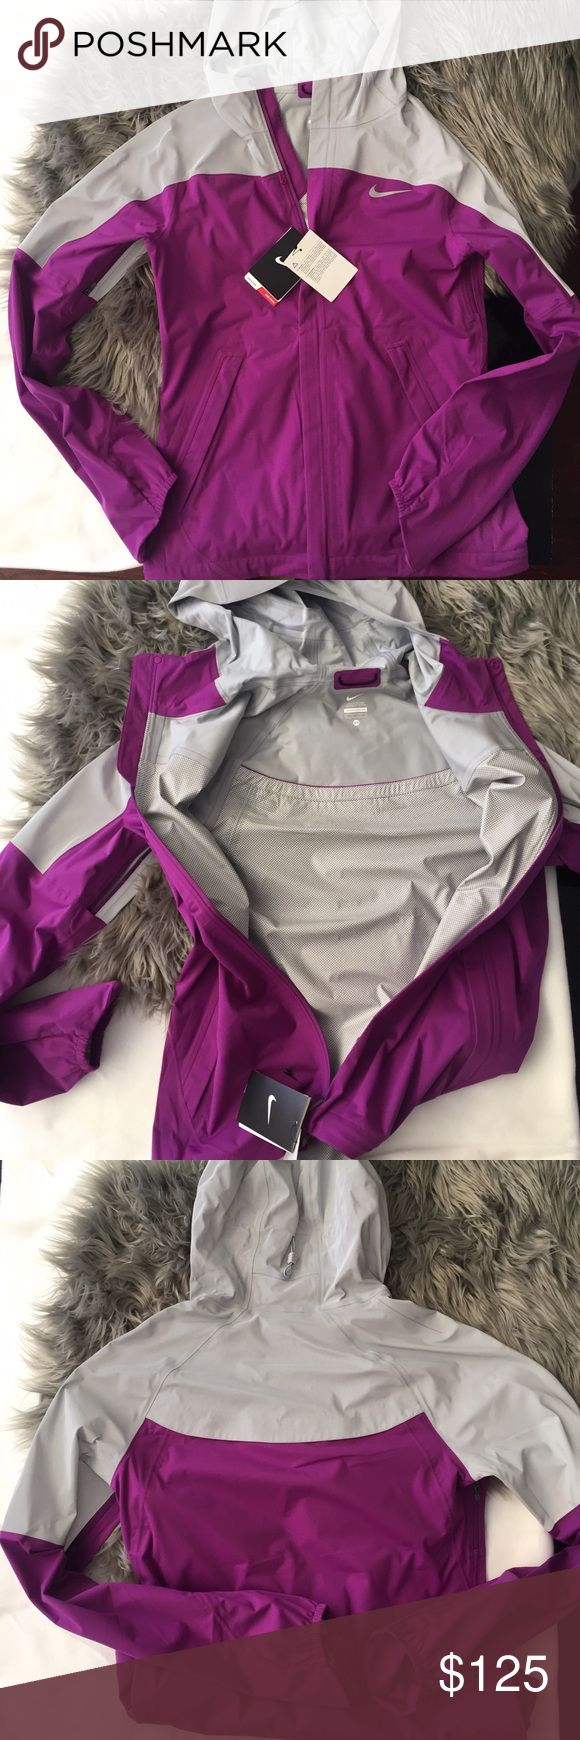 nike/ women's running jacket Brand new with tags! Beautiful running jacket. Super reflective and ventilated. No flaws, just didn't fit me :( Nike Jackets & Coats